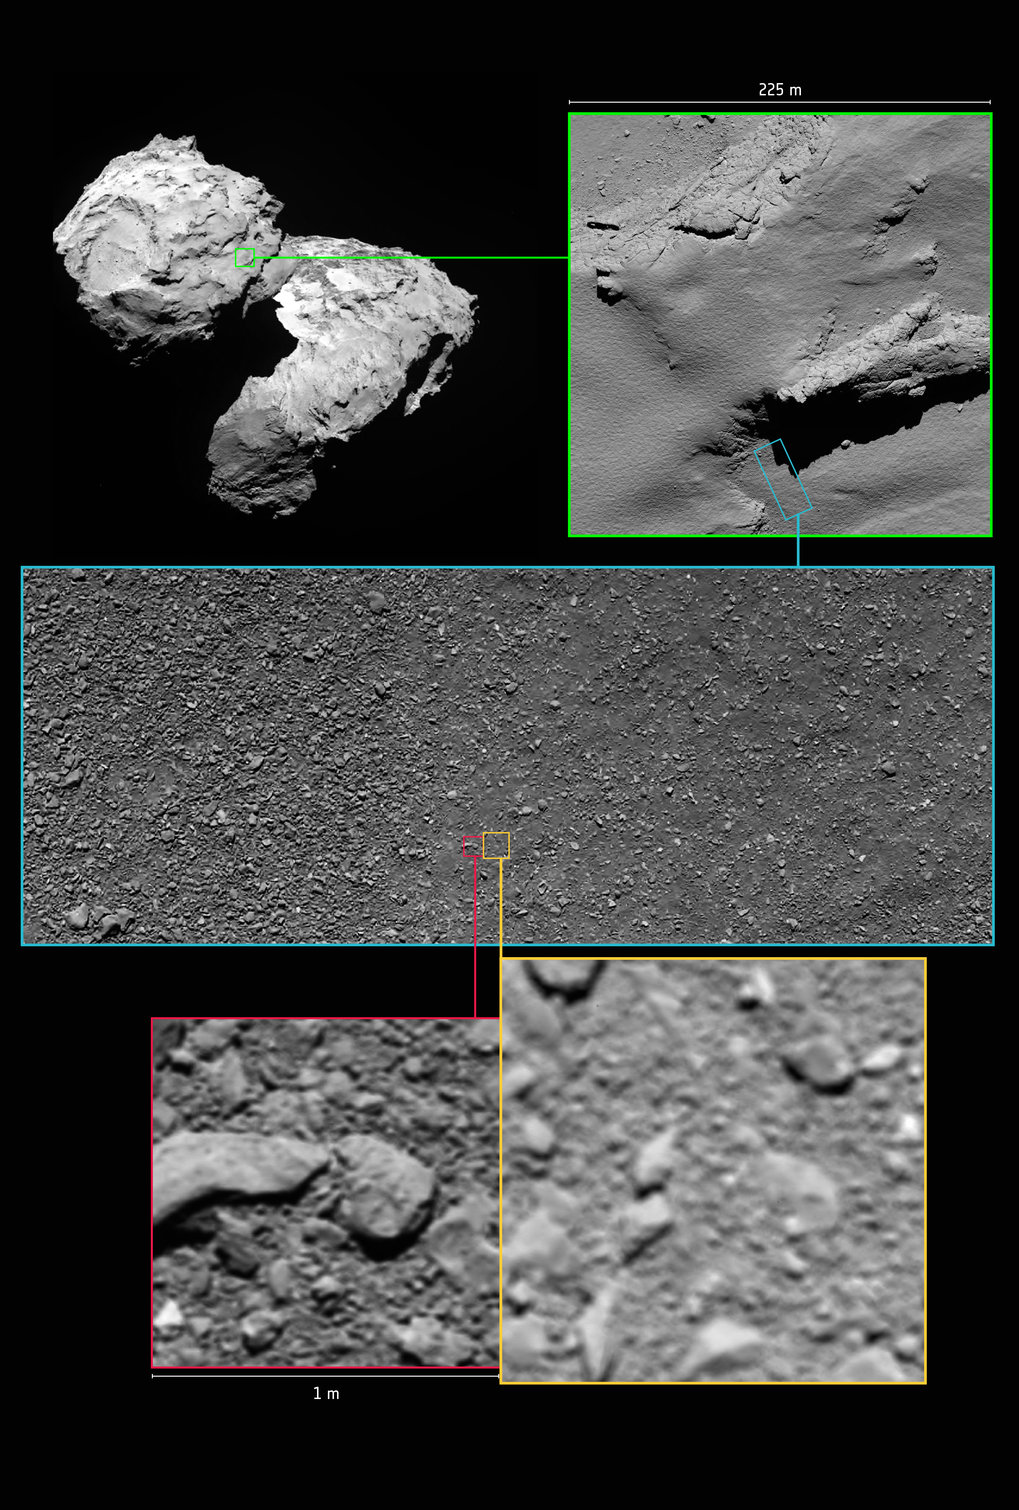 Annotated image indicating the approximate locations of some of Rosetta's final images. Note that due to differences in timing and viewing geometry between consecutive images in this graphic, the illumination and shadows vary. <br /><br />Top left: a global view of Comet 67P/Churyumov–Gerasimenko shows the area in which Rosetta touched down in the Ma'at region on the smaller of the two comet lobes. This image[EB7] was taken by the OSIRIS narrow-angle camera on 5 August 2014 from a distance of 123 km.<br /><br />Top right: an image taken by the OSIRIS narrow-angle camera from an altitude of 5.7 km, during Rosetta's descent on 30 September 2016. The image scale is about 11 cm/pixel and the image measures about 225 m across. The final touchdown point, named Sais, is seen in the bottom right of the image and is located within a shallow, ancient pit. Exposed, dust-free terrain is seen in the pit walls and cliff edges. Note the image is rotated 180º with respect to the global context image at top right.<br /><br />Middle: an OSIRIS wide-angle camera image taken from an altitude of about 331 m during Rosetta's descent. The image scale is about 33 mm/pixel and the image measures about 55 m across. The image shows a mix of coarse and fine-grained material. <br /><br />Bottom right: the penultimate image, which was the last complete image taken and returned by Rosetta during its descent, from an altitude of 24.7±1.5 m.<br /><br />Bottom left: the final image, reconstructed after Rosetta's landing, was taken at an altitude of 19.5±1.5 m. The image has a scale of 2 mm/pixel and measures about 1 m across. <br /><br />